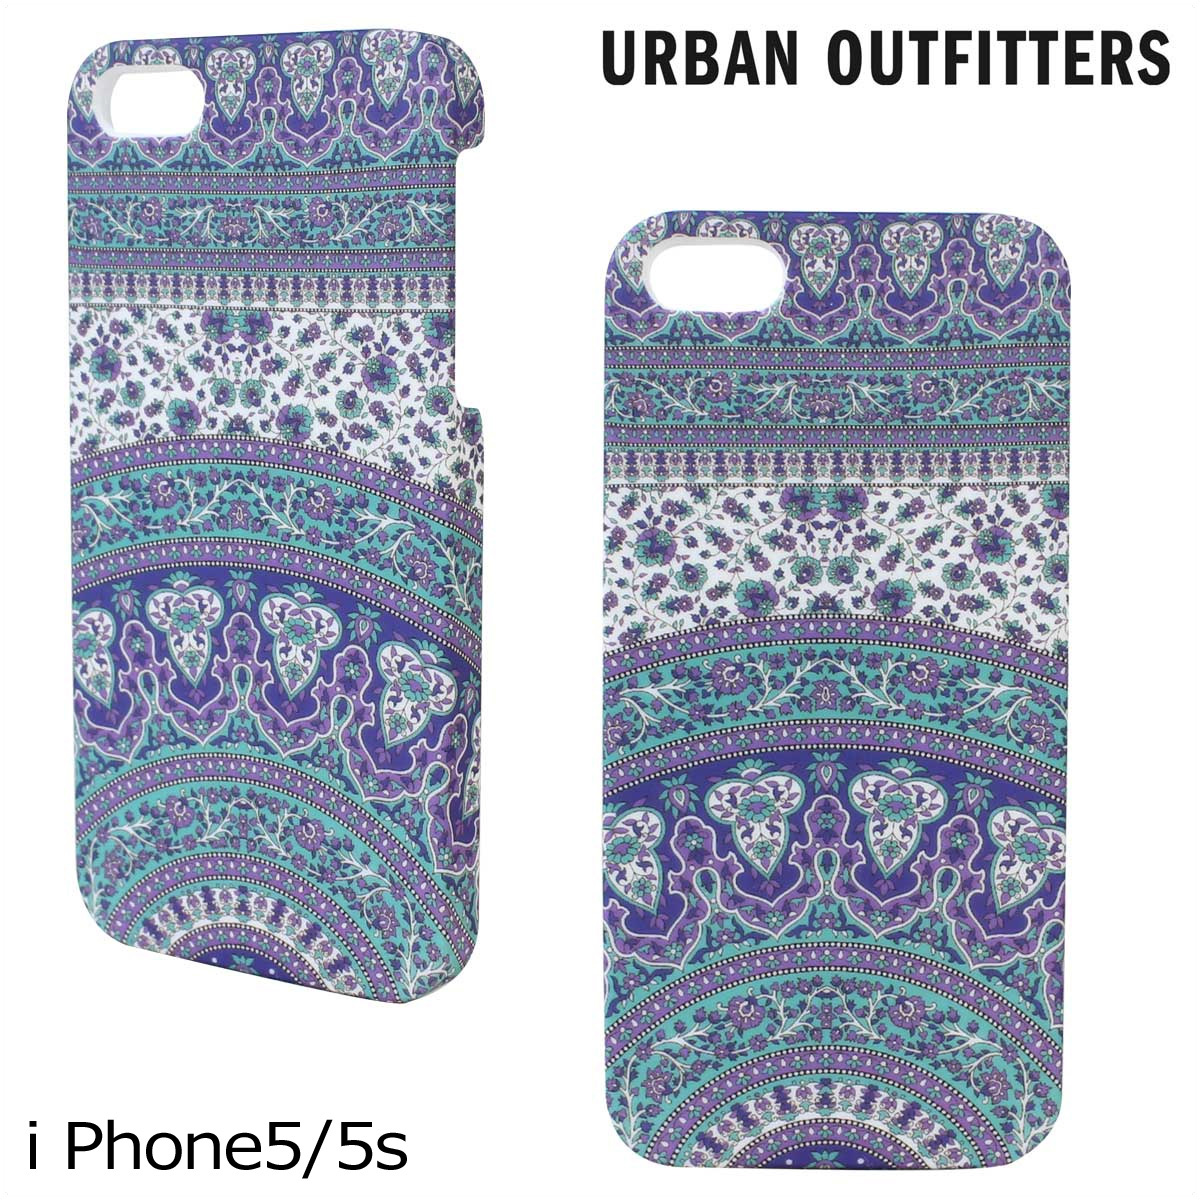 Whats Up Sports Urban Outfitters Urban Outfitters Iphone6s Case